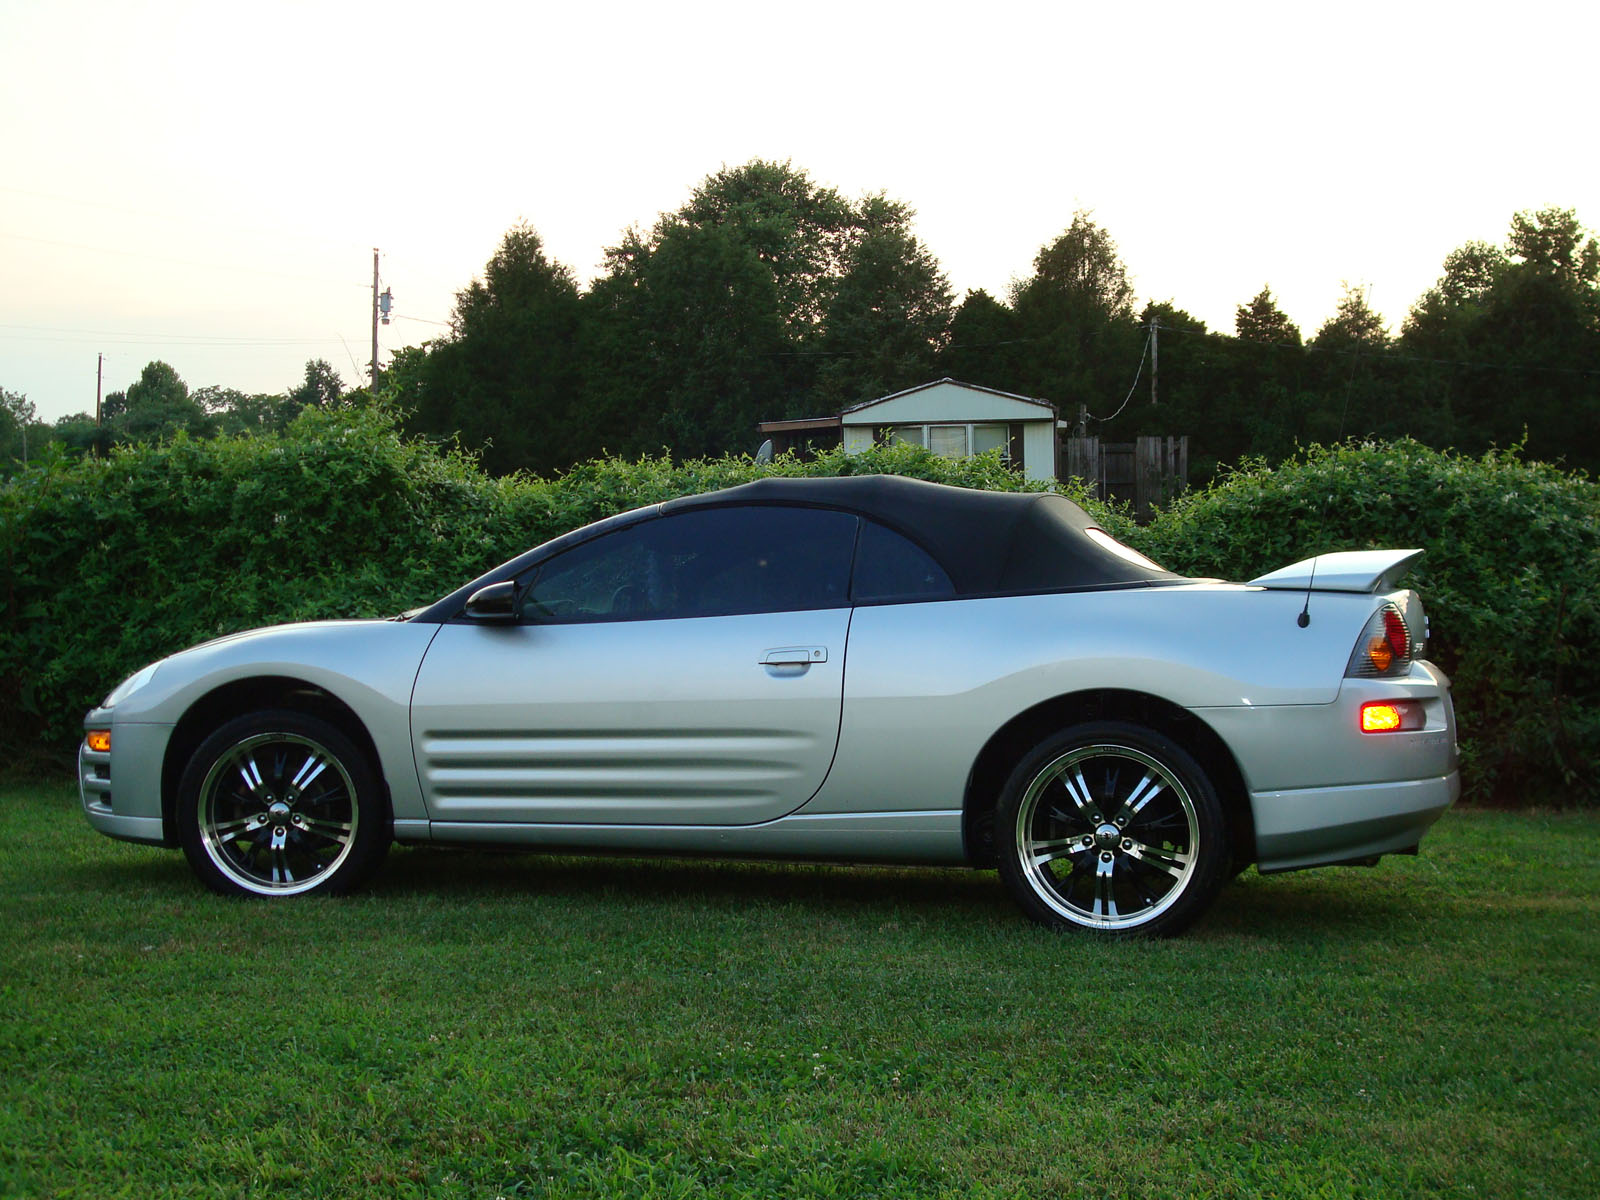 2003 mitsubishi eclipse spyder gs for sale speedwell tennessee